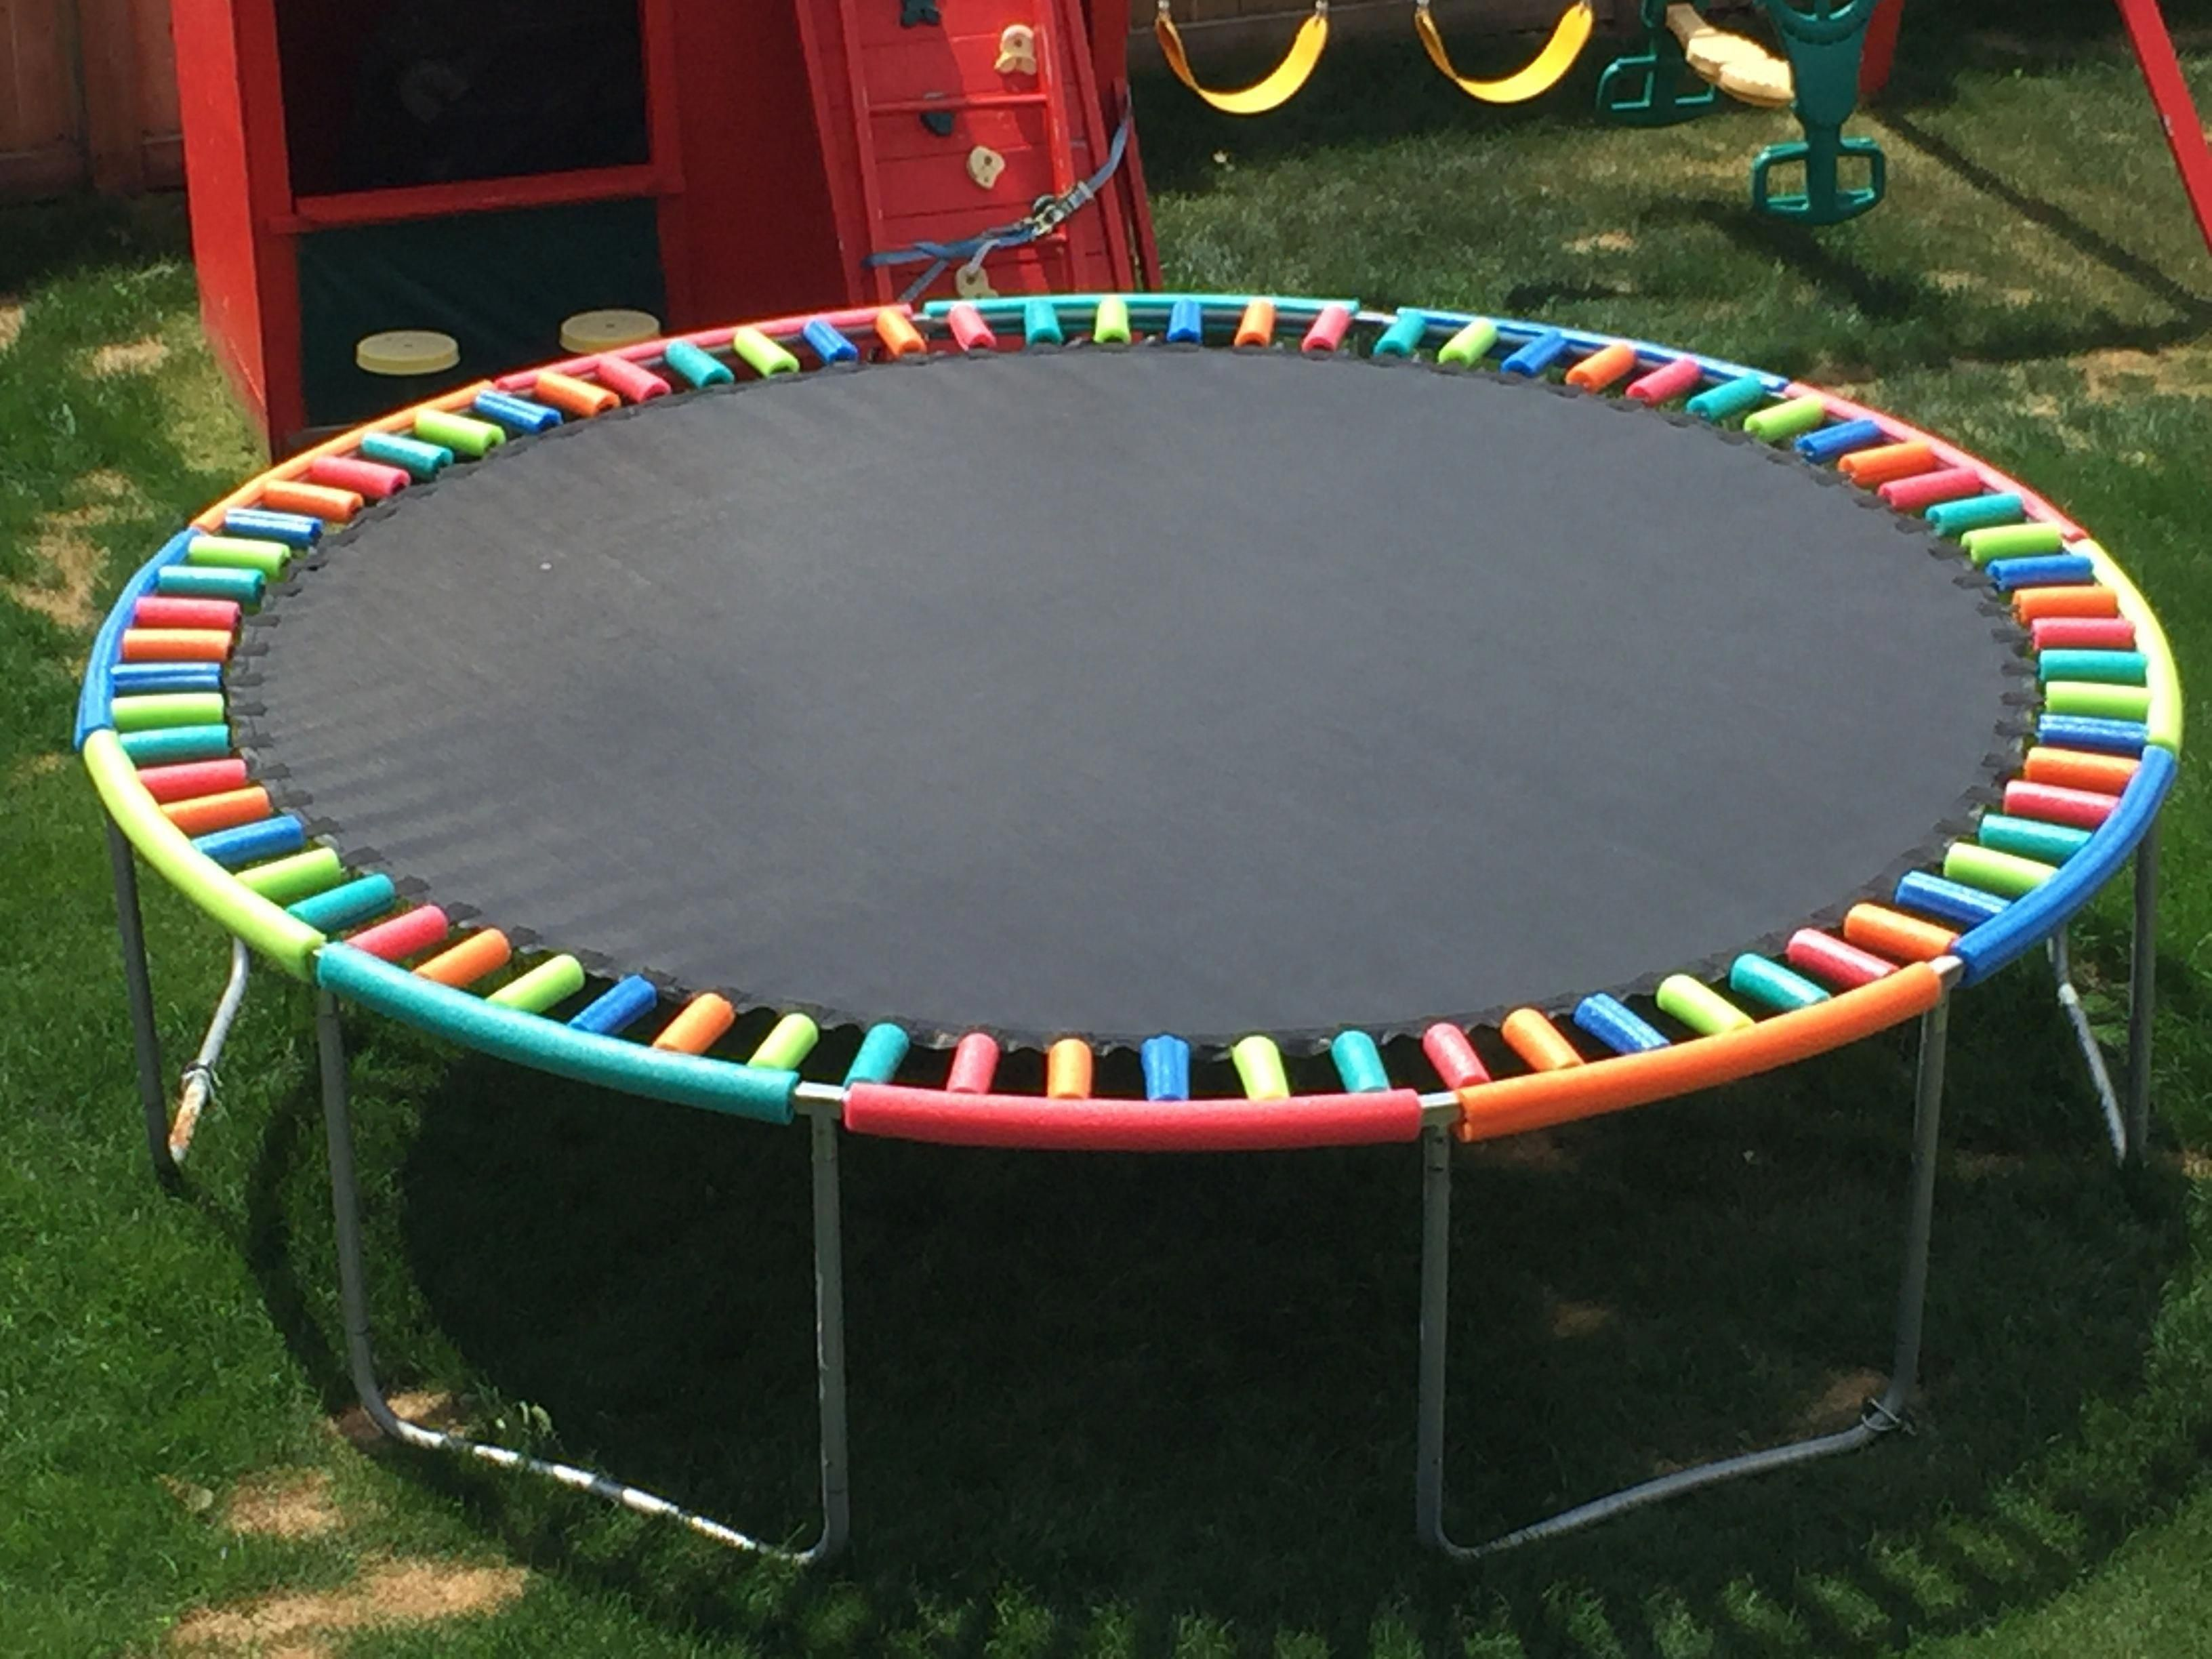 Diy Pool Noodle Safety Hack For Springs On Trampoline Backyardtrampolinechildren Backyardtrampolineslee Backyard Playground Backyard Trampoline Diy Backyard